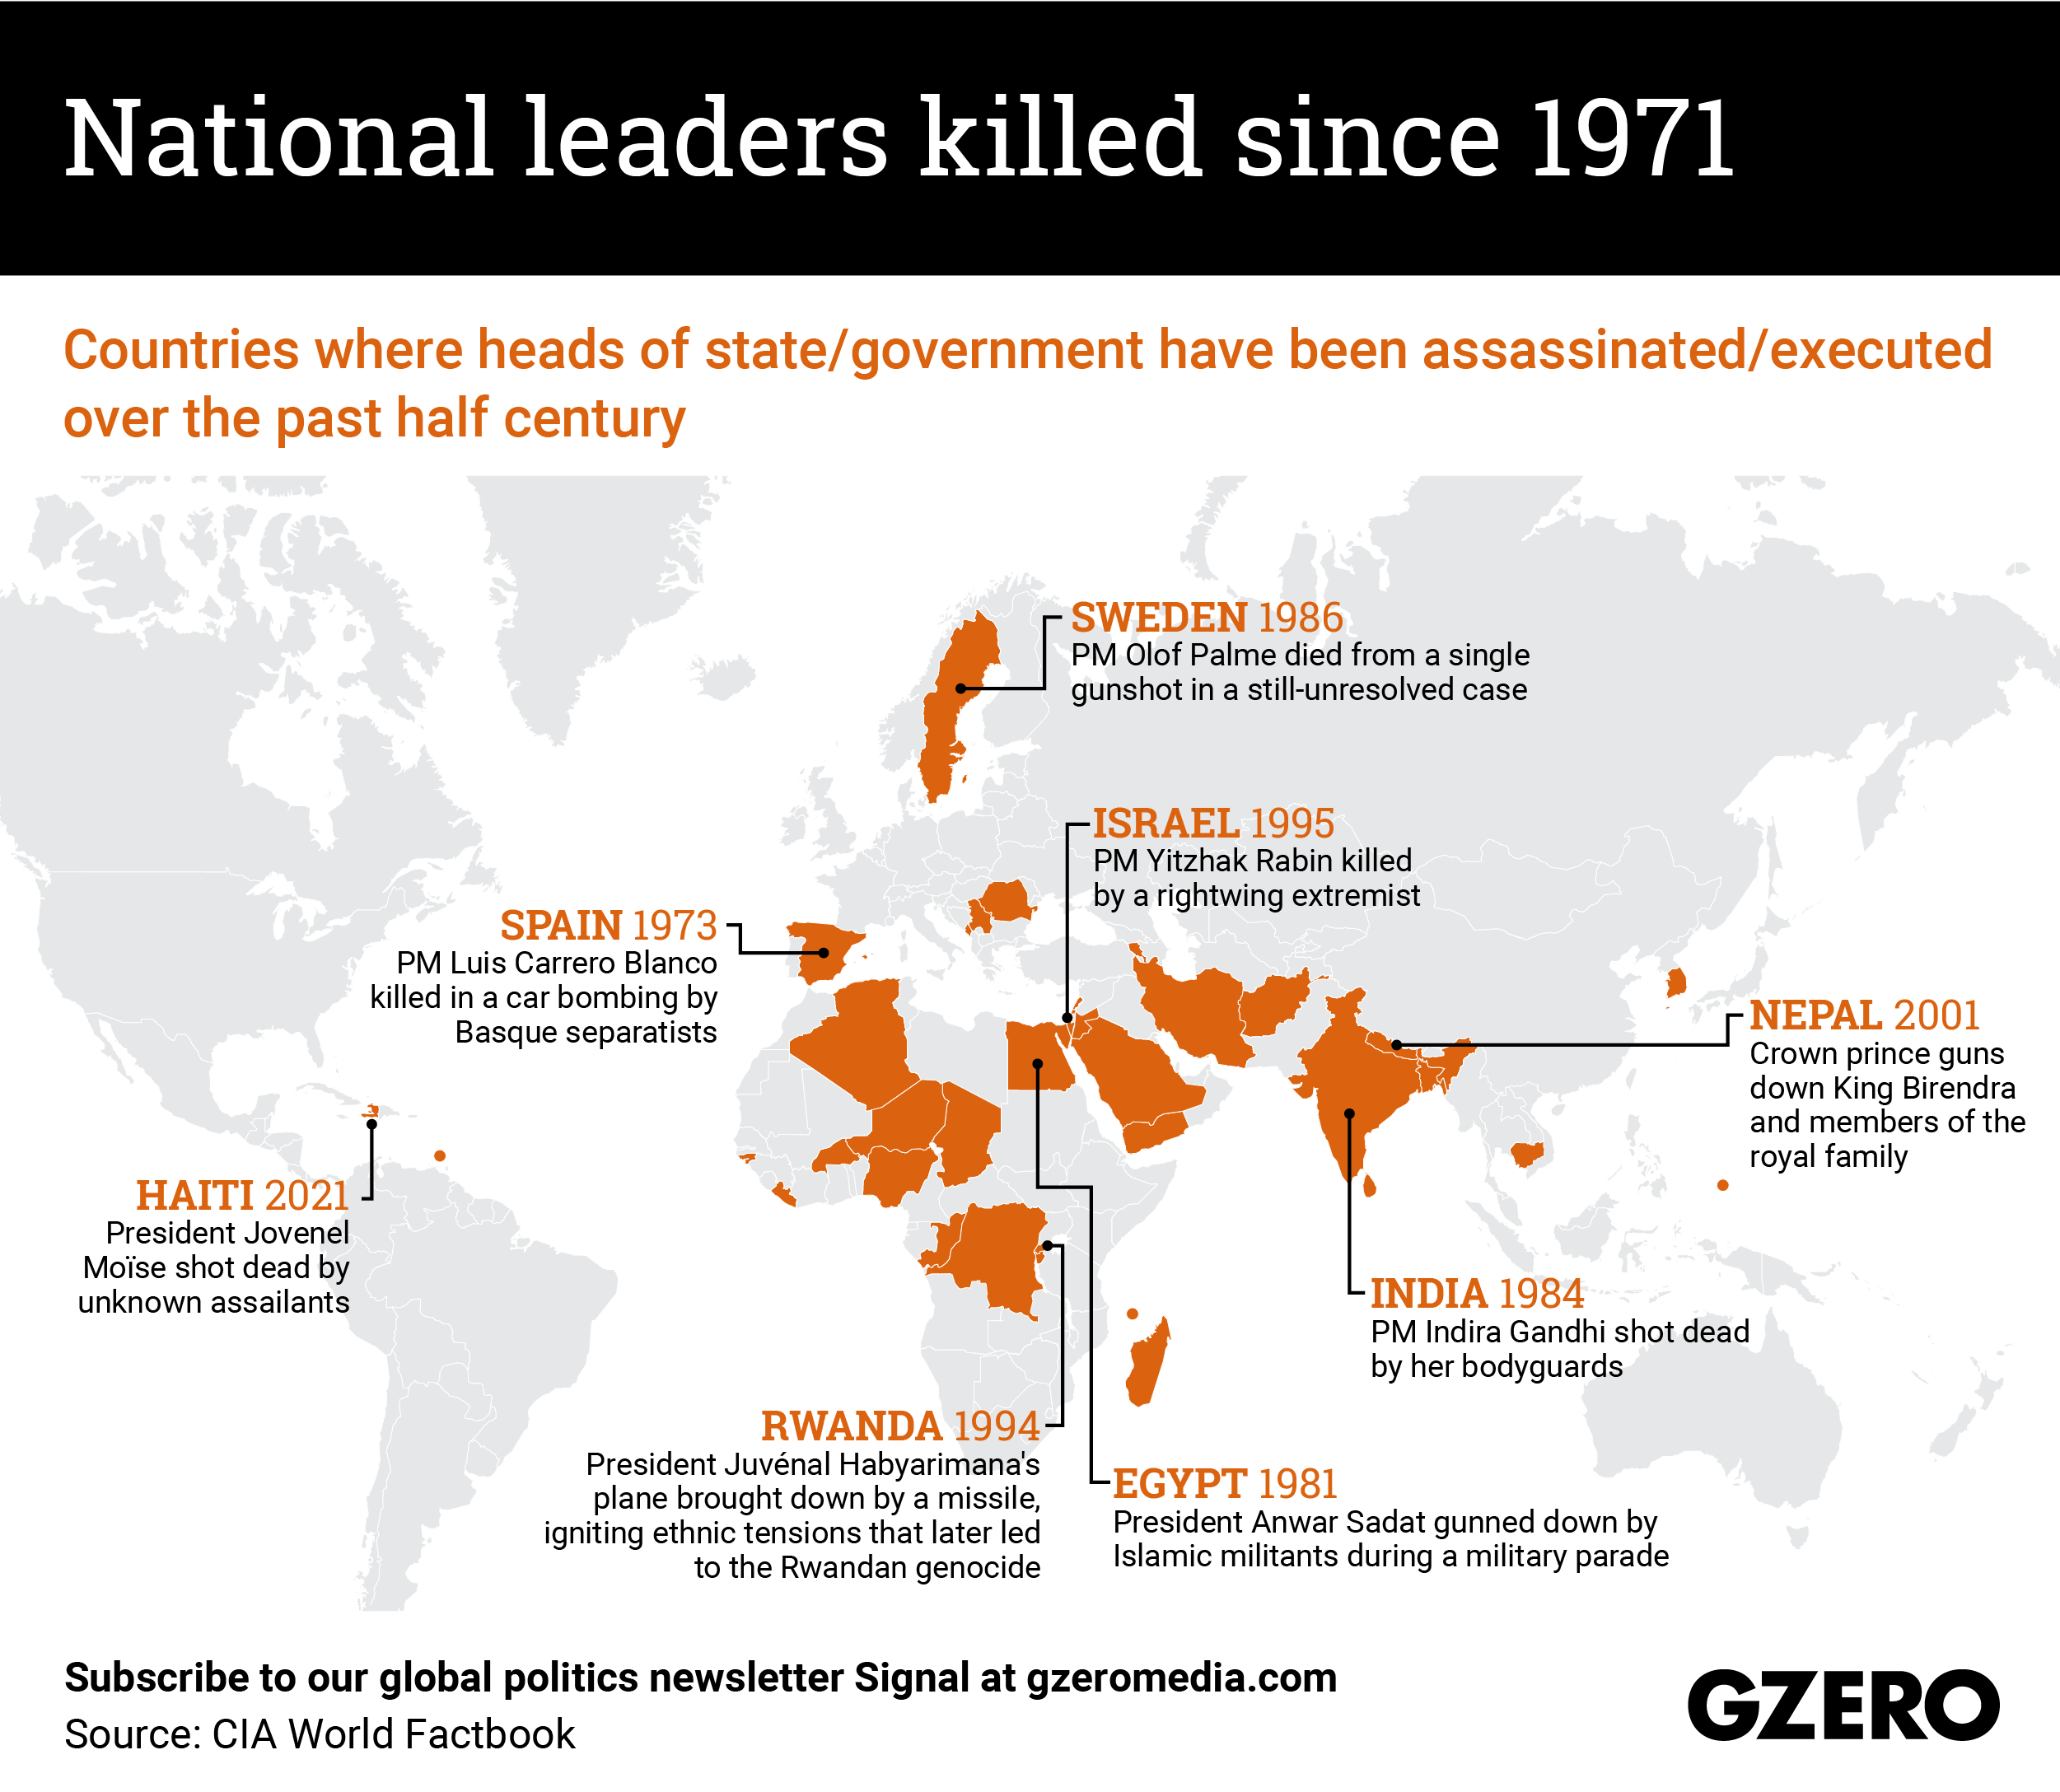 The Graphic Truth: National leaders killed since 1971